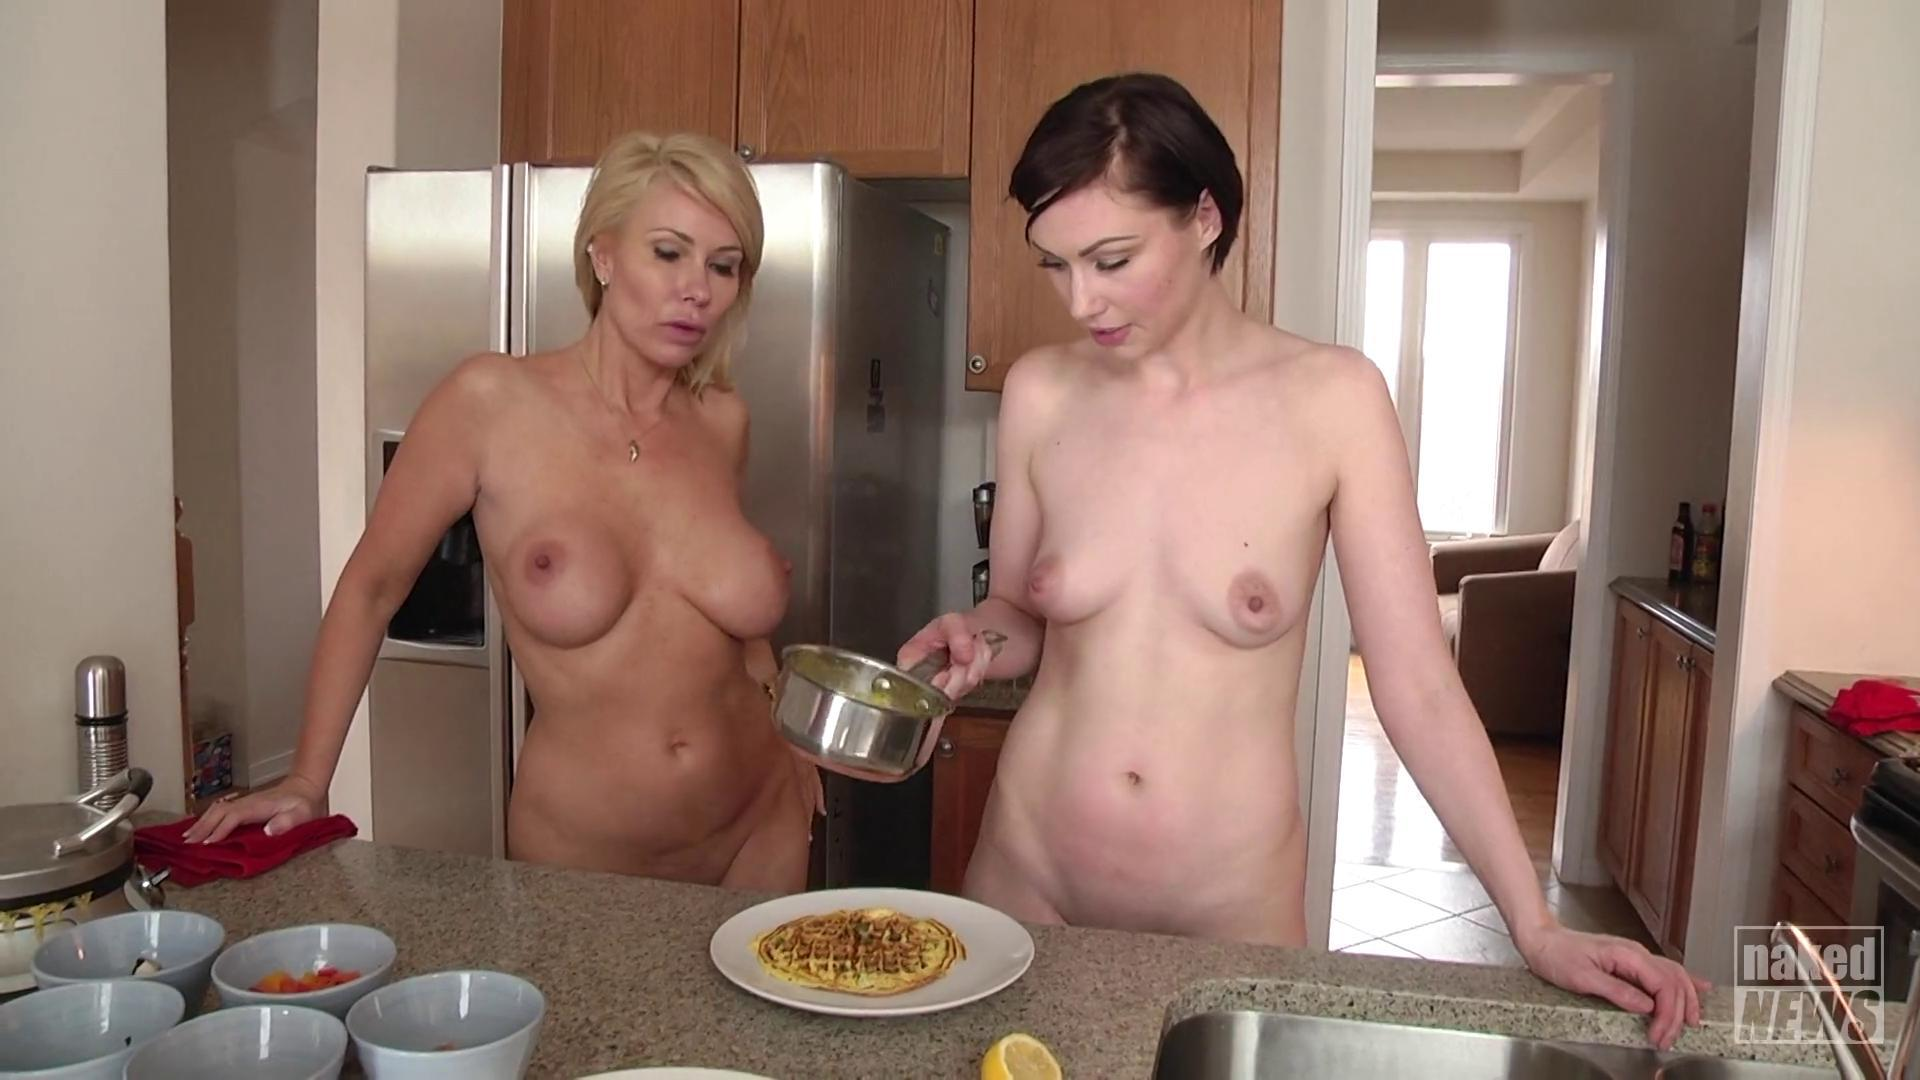 Cooking In The Raw With Some Hot Babes Naked News